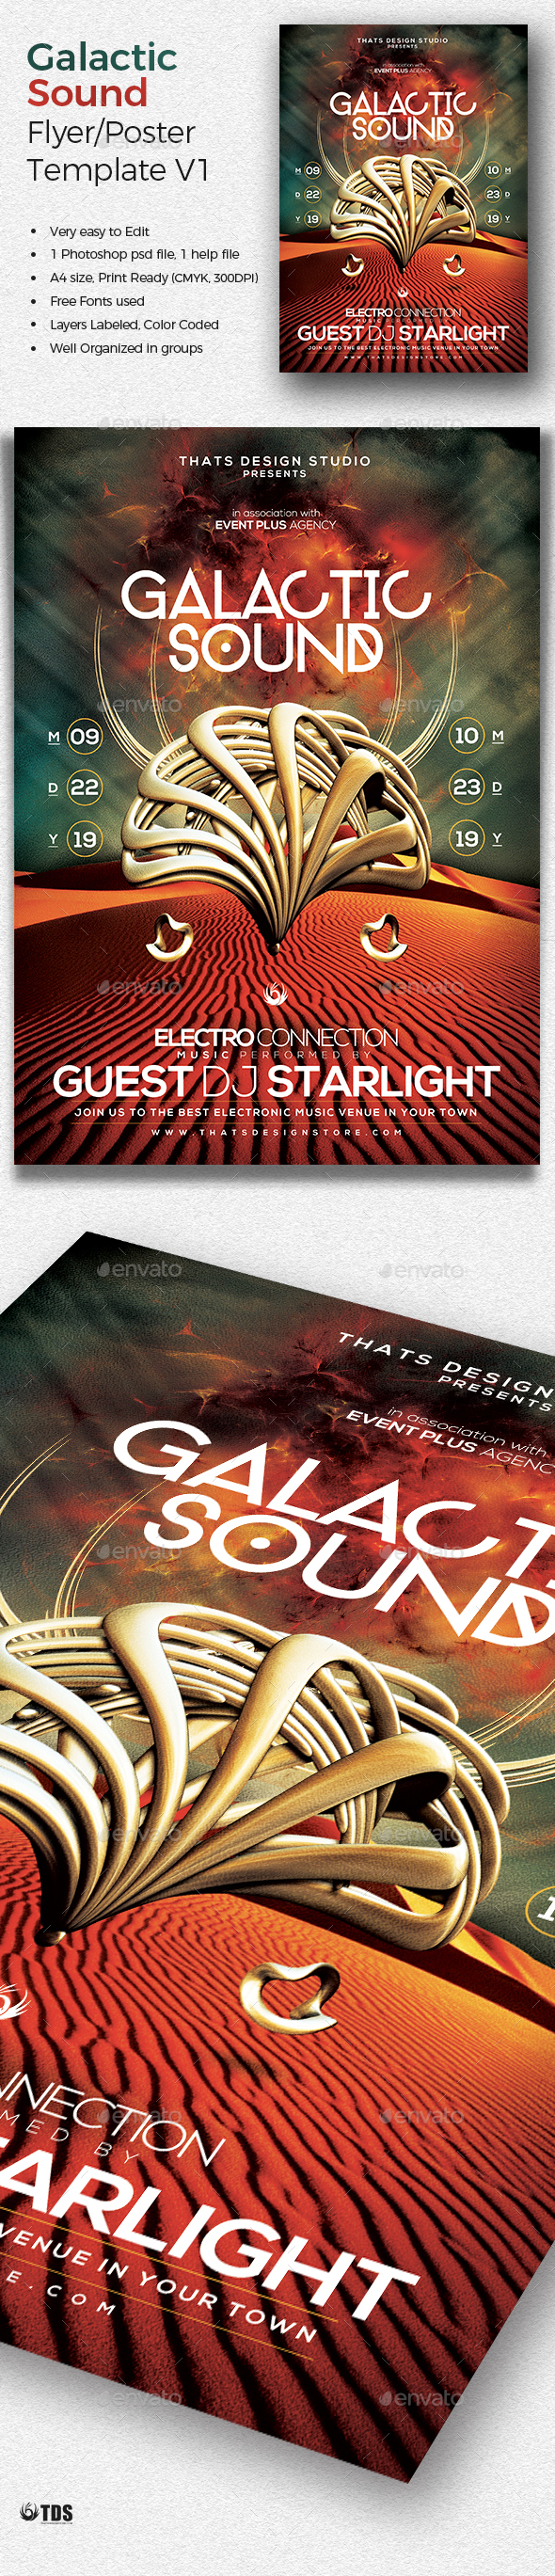 Galactic Sound Flyer Template V1 - Clubs & Parties Events